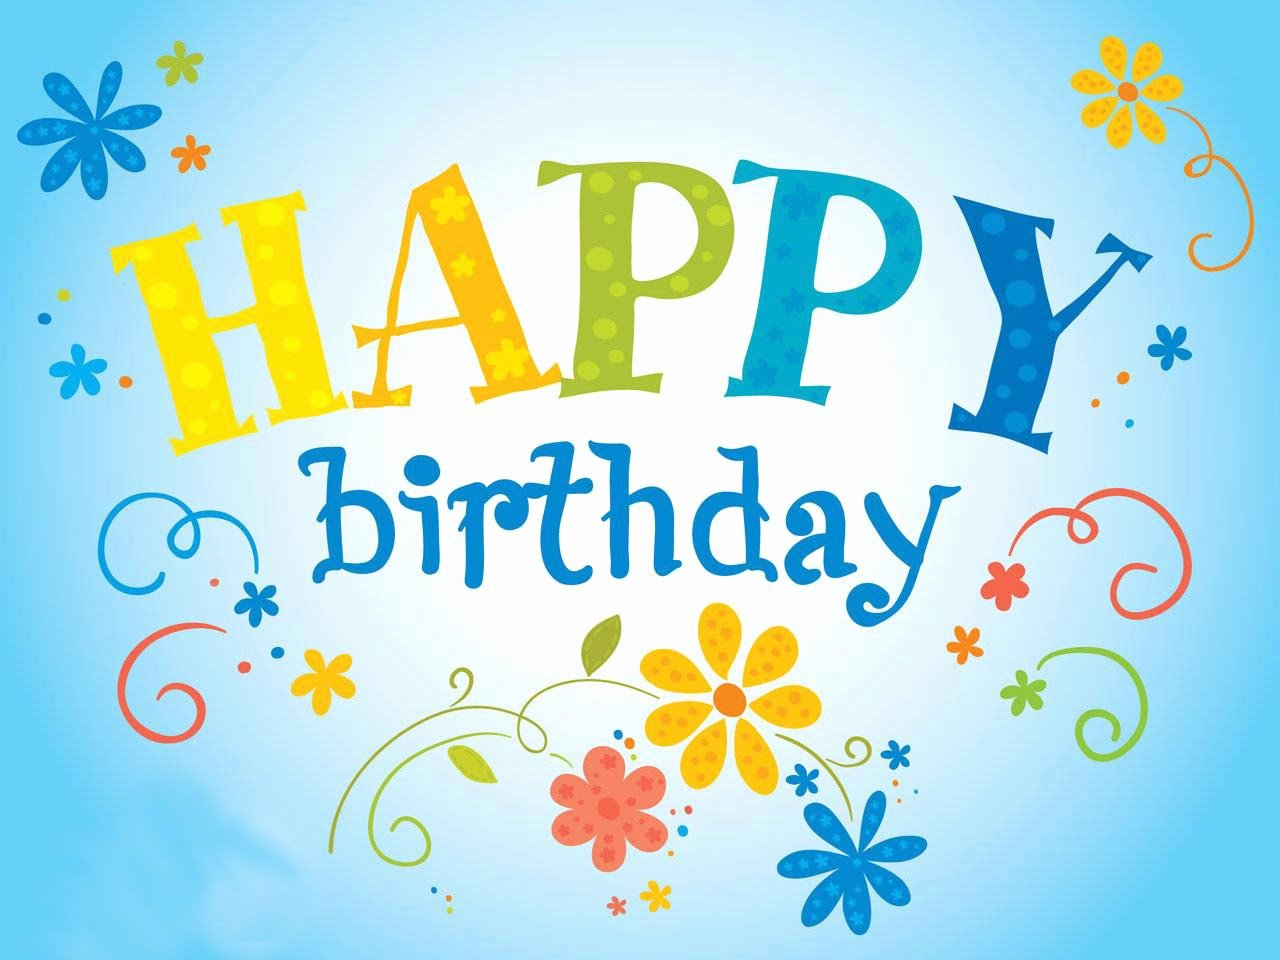 Happy Birthday to Me Poster Best Of Happy Birthday Wishes Design Poster